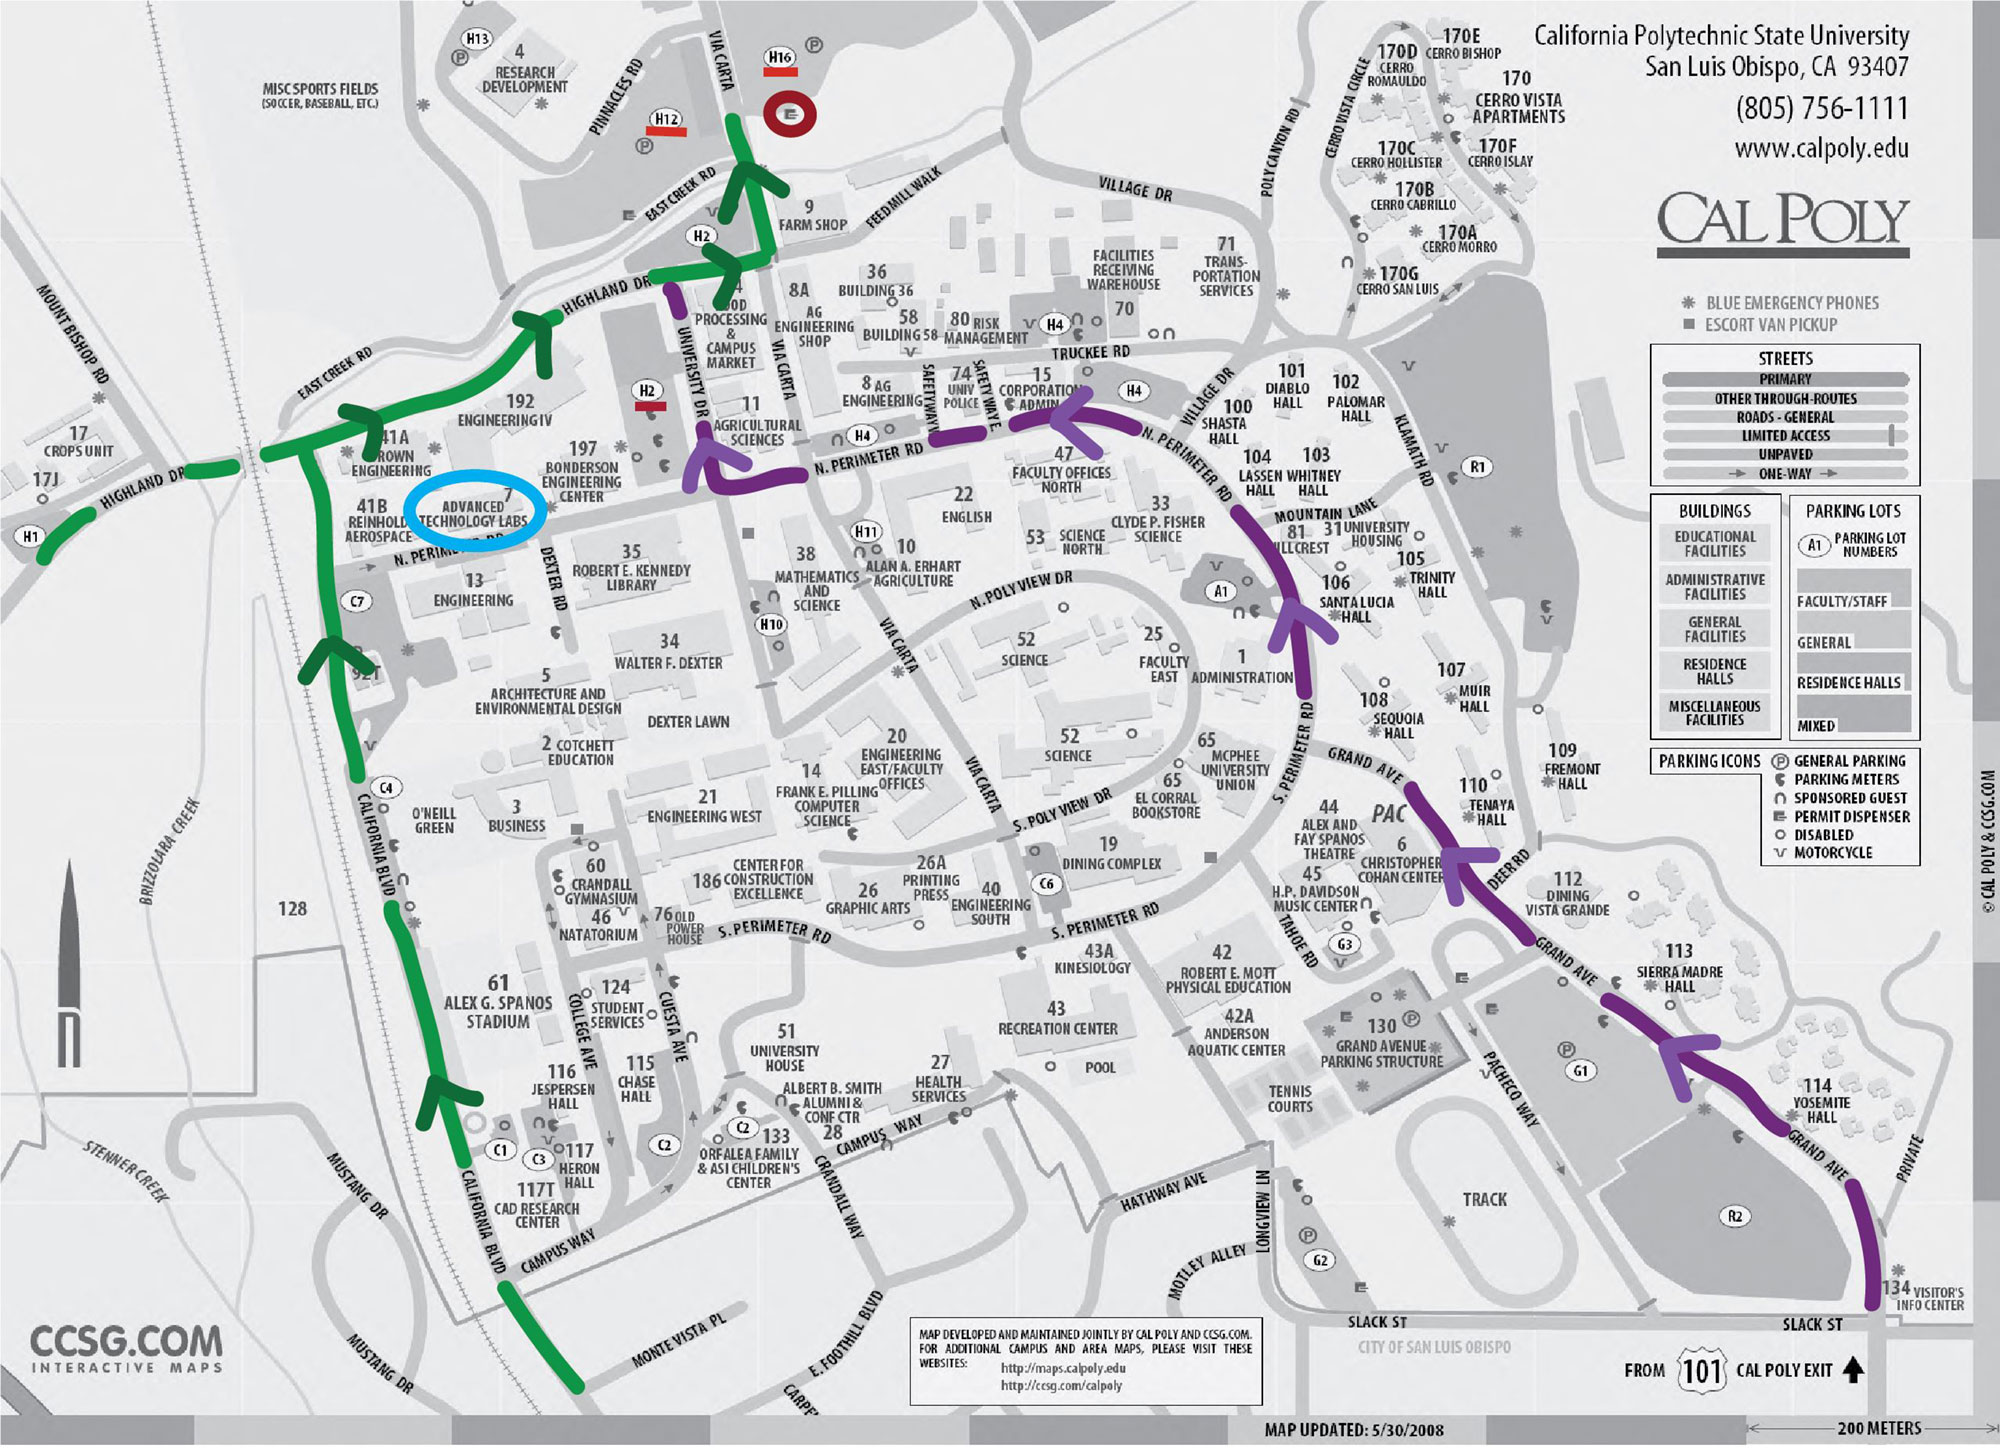 Cal Poly Campus Map - parking